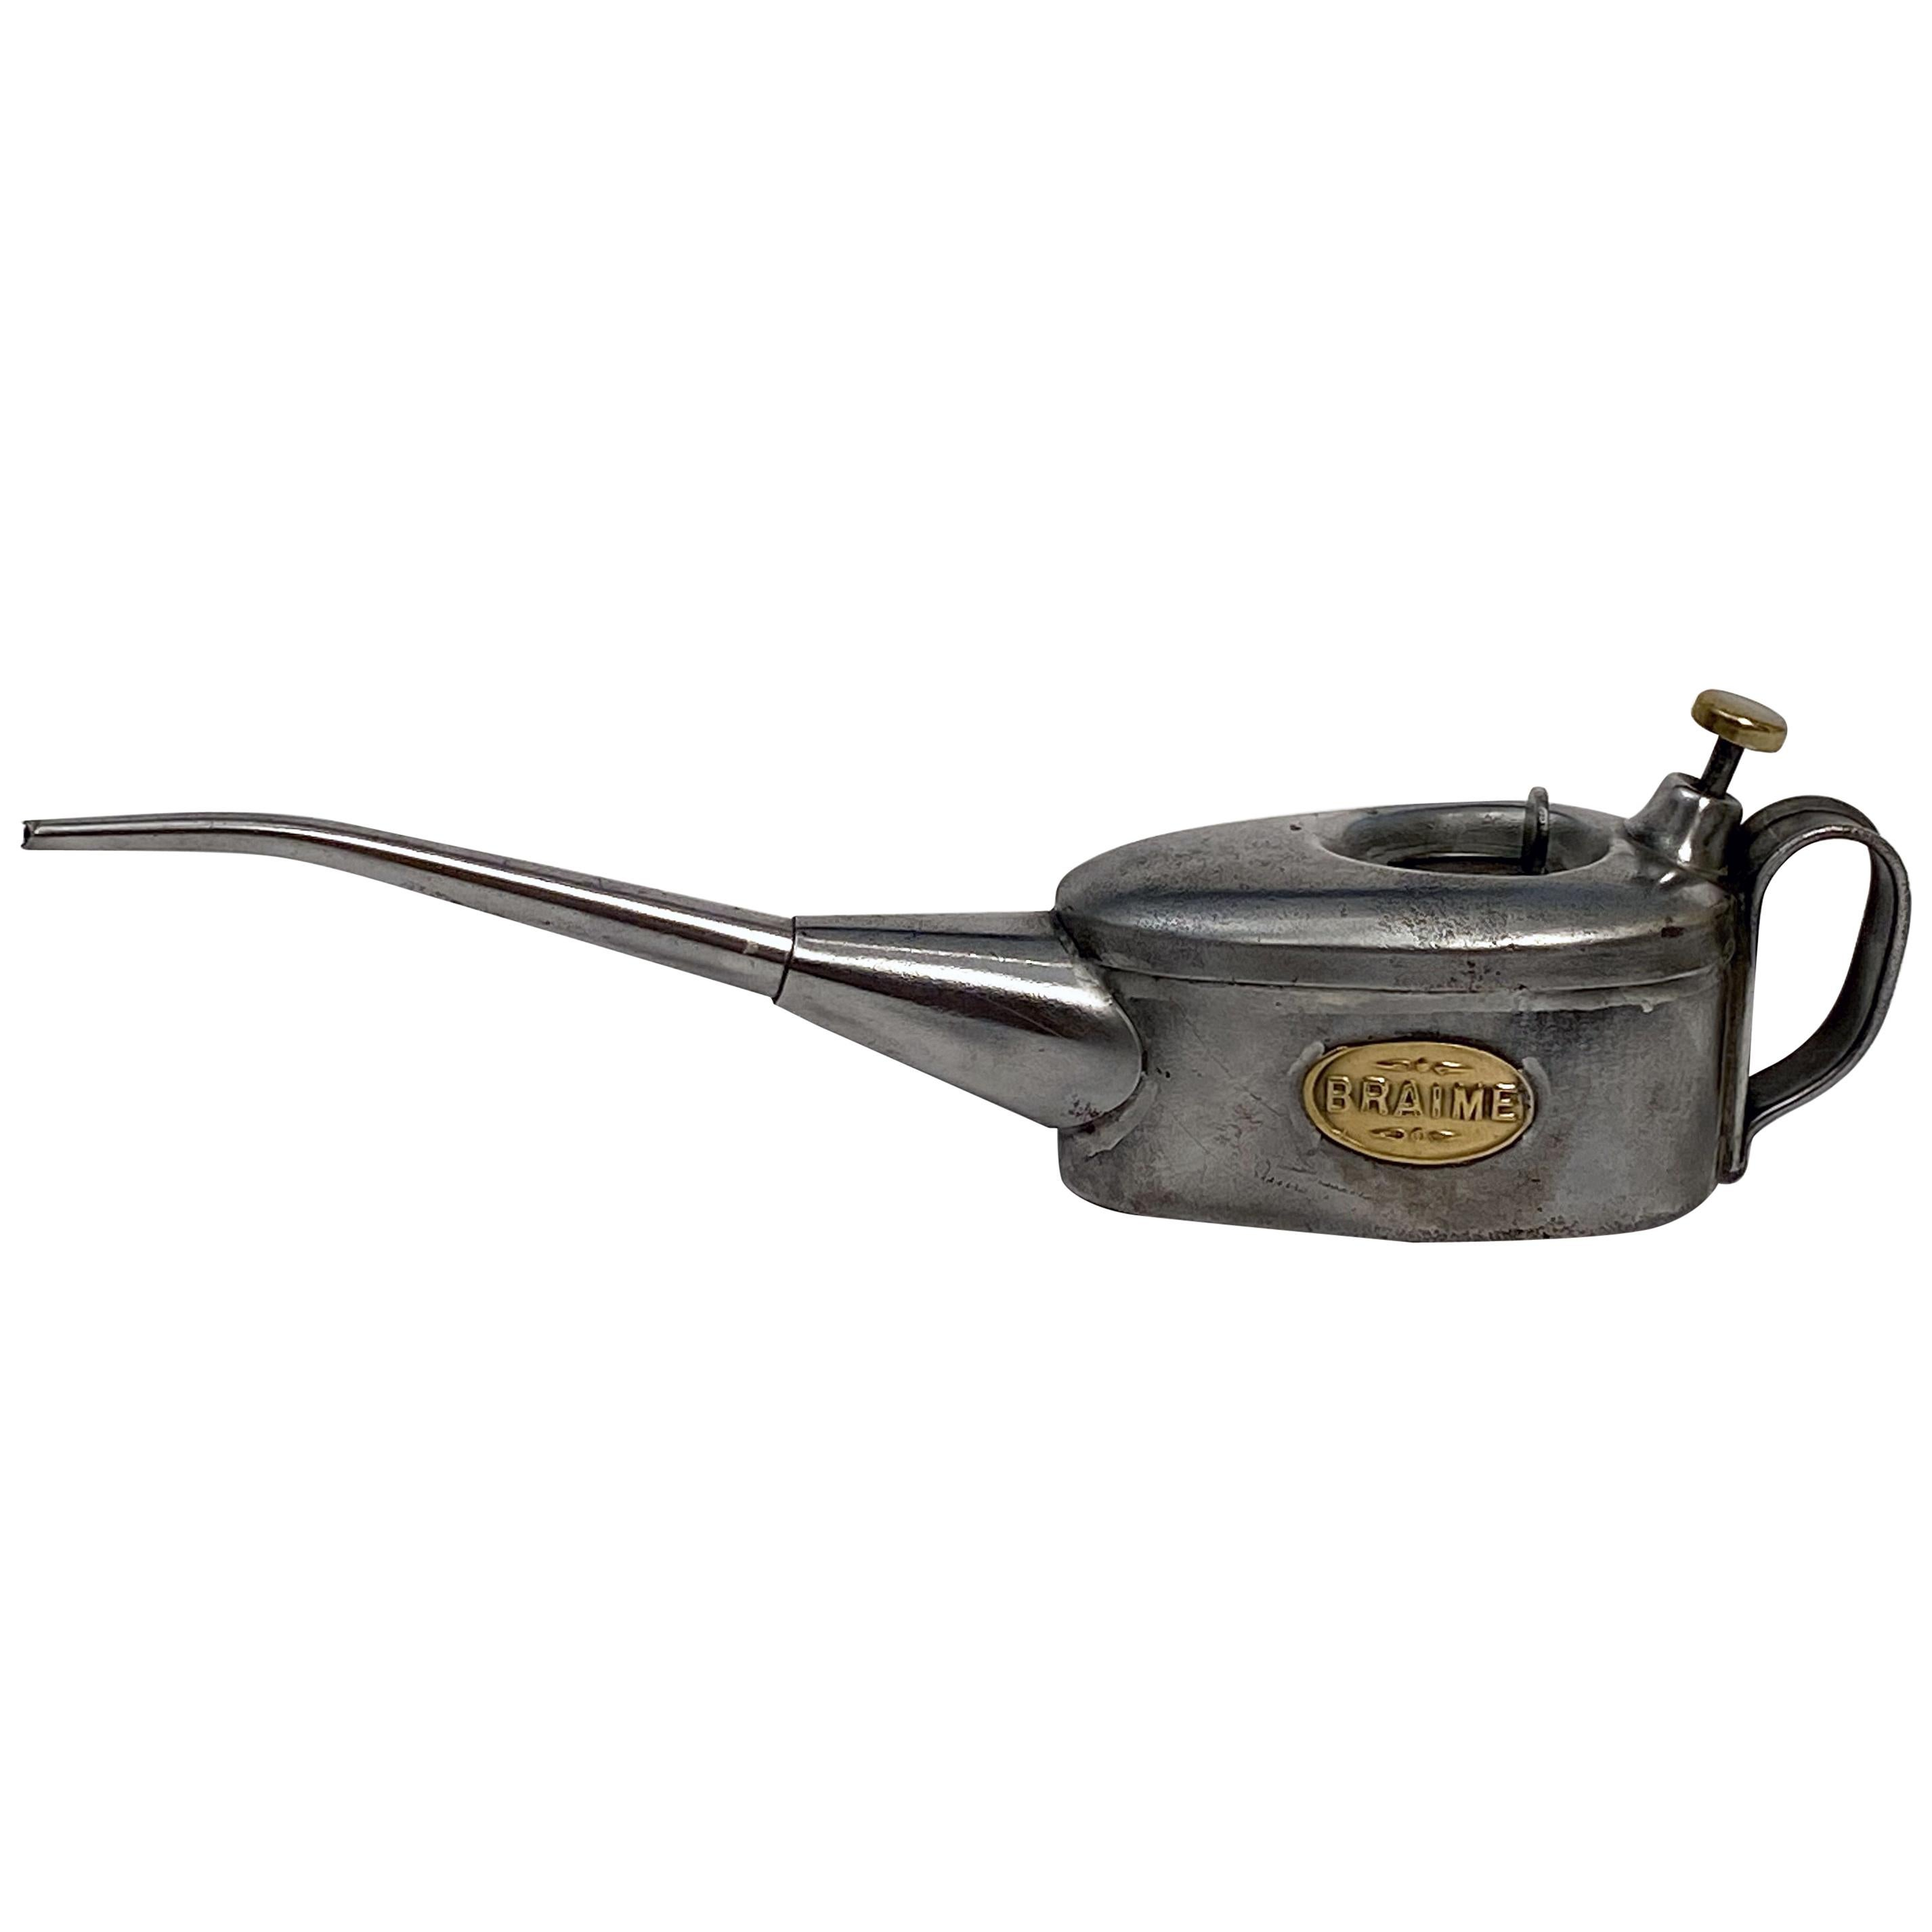 English Oilcan or Cannister of Steel and Brass by Braime